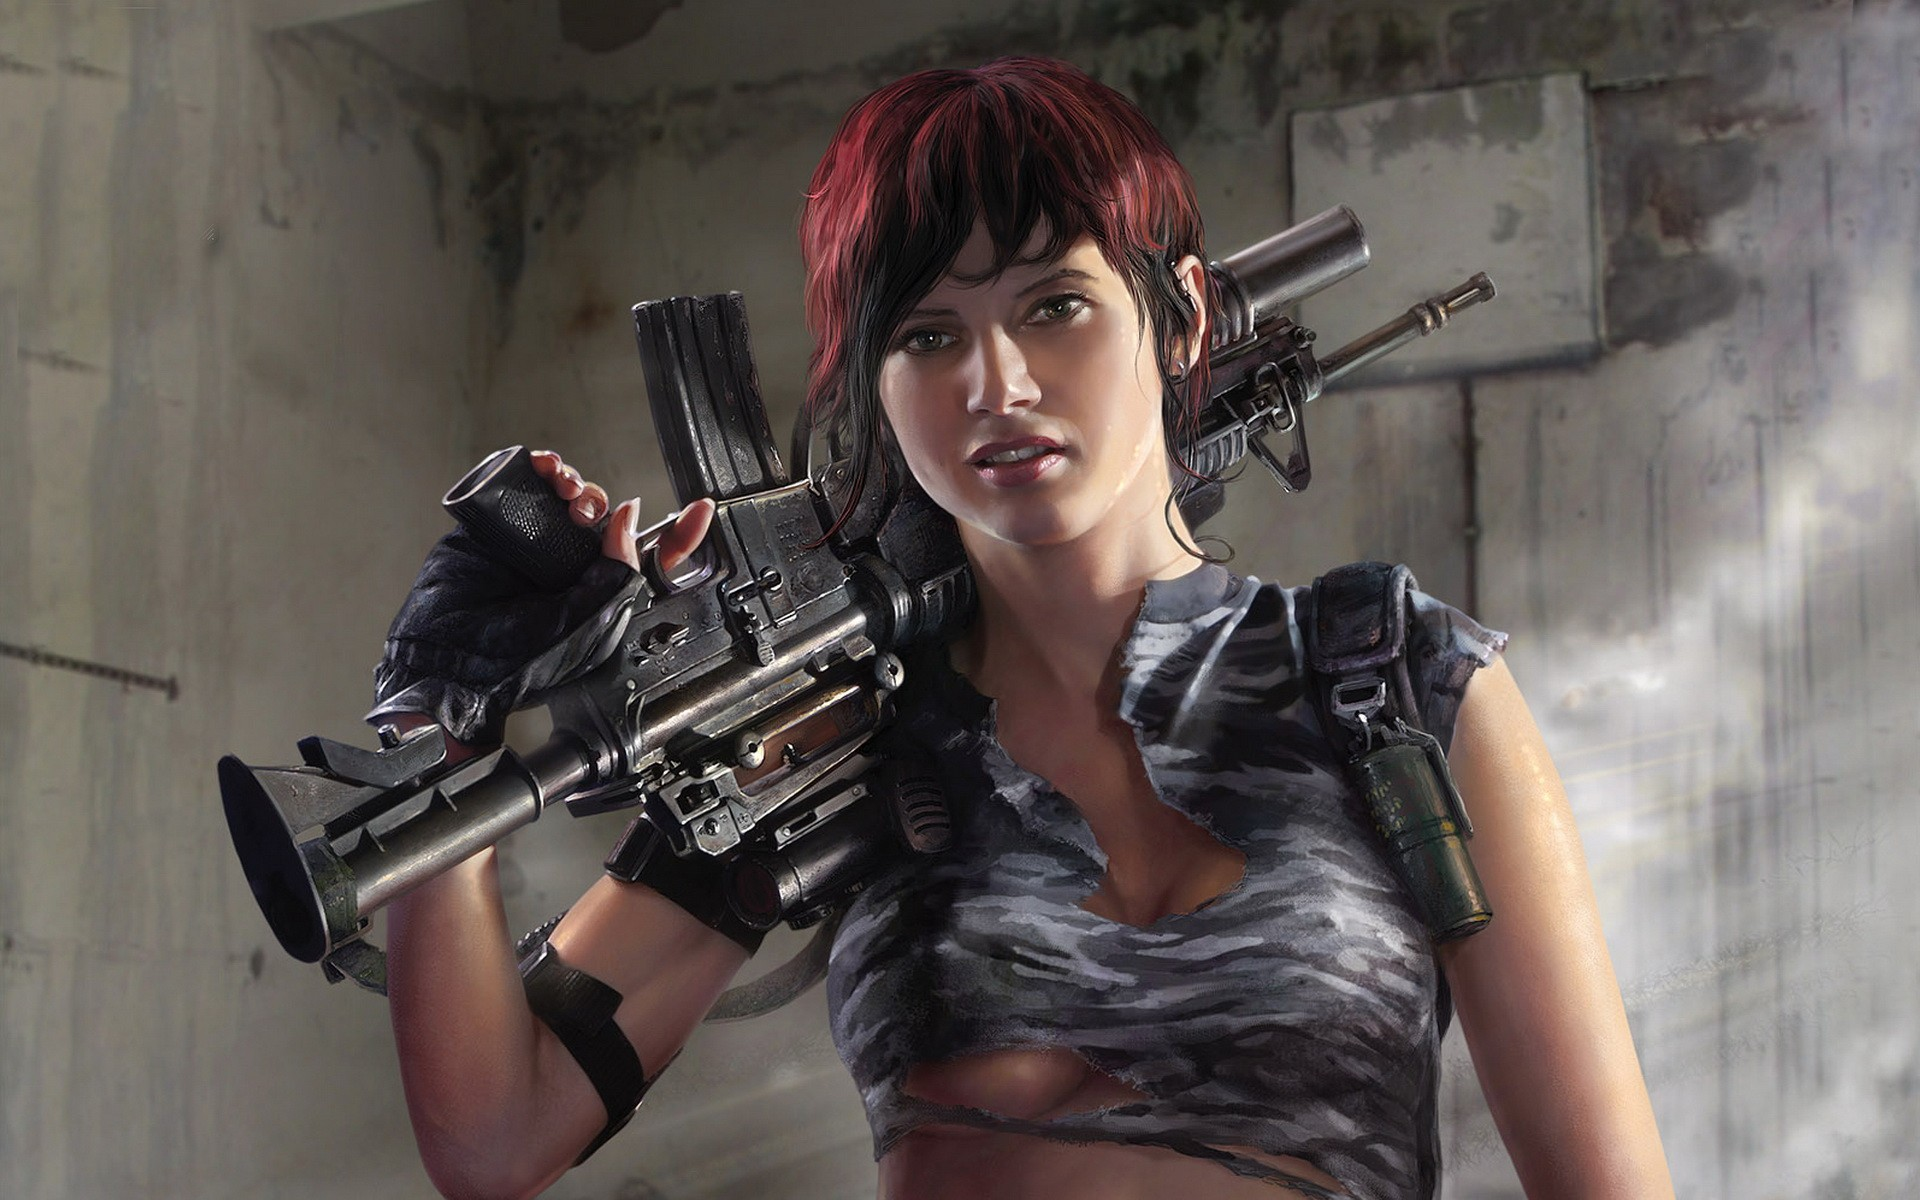 Women Guns Wallpaper 1920x1200 Women Guns CGI 3D Girls 1920x1200